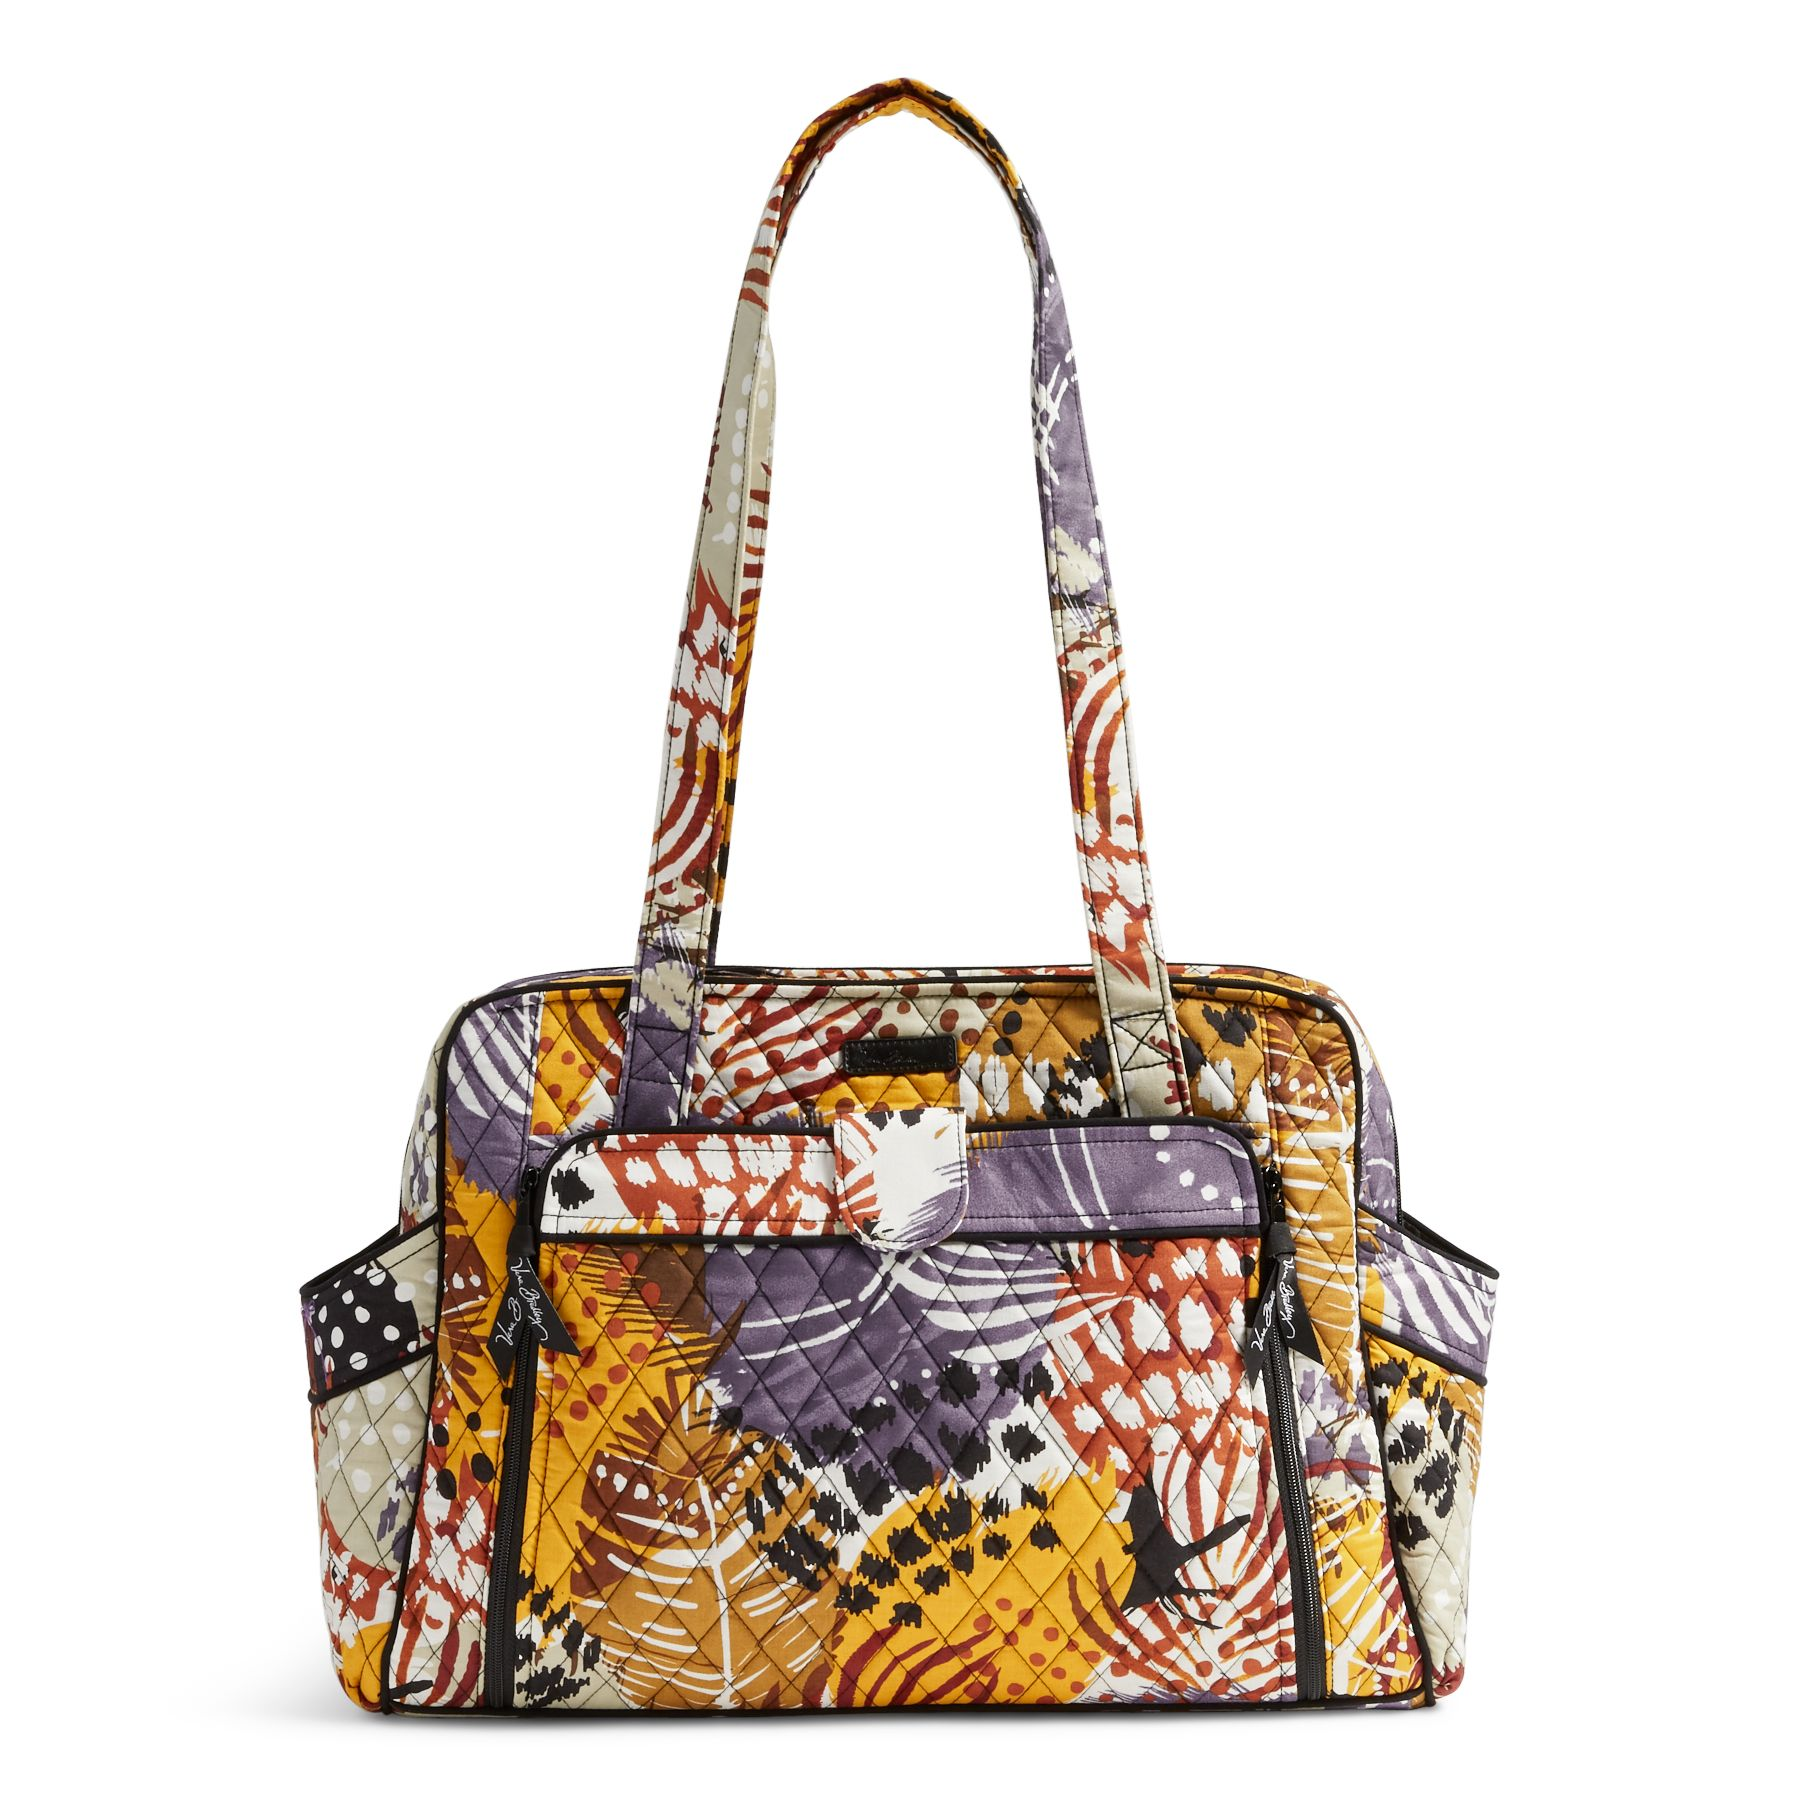 Vera Bradley Stroll Around Baby Bag In Painted Feathers